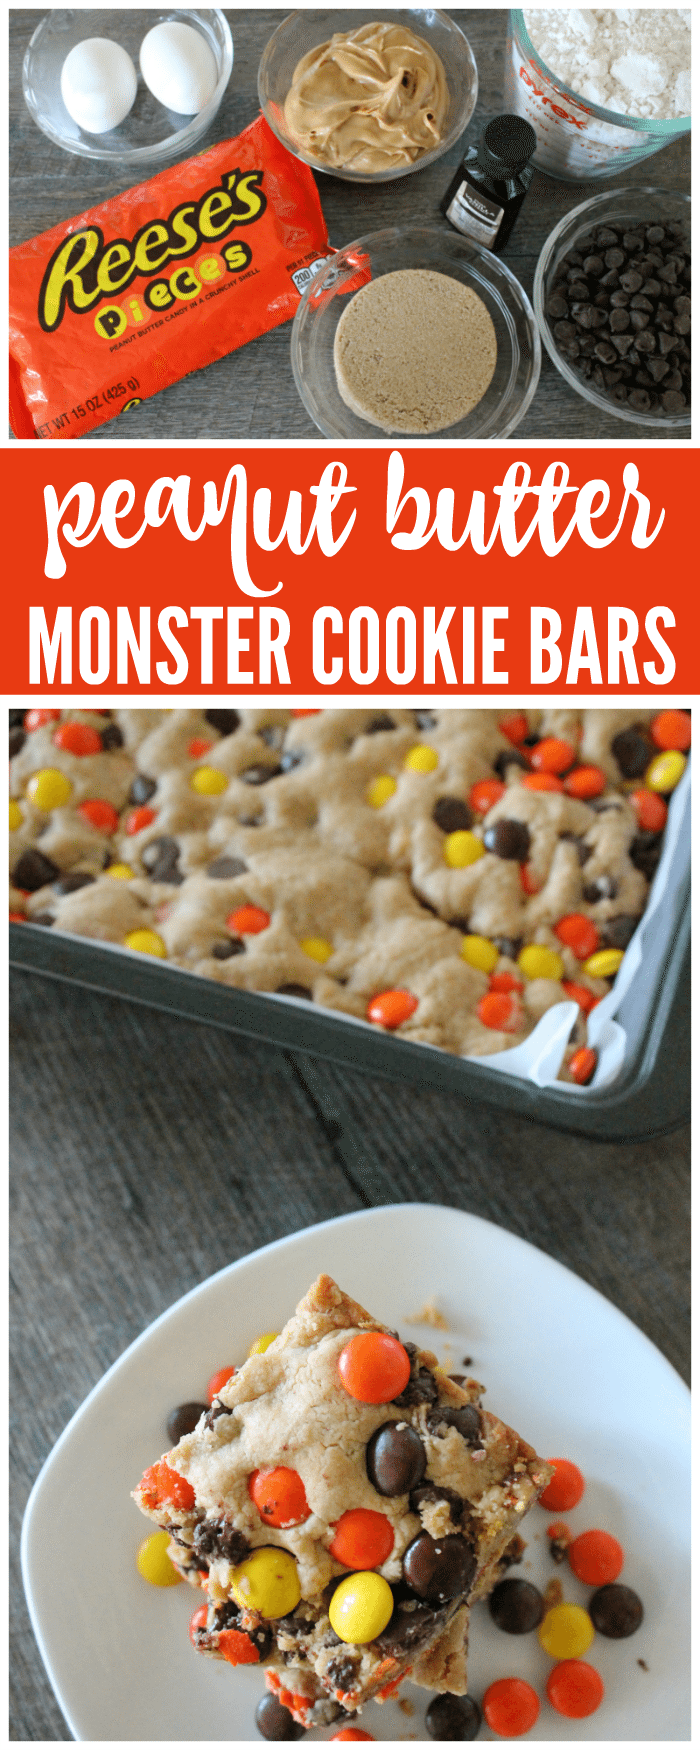 Peanut Butter Monster Cookie Bars are the perfect Summer Dessert full of Chocolate Peanut Butter goodness in a chewy cookie recipe. Butter Monster Cookie Bars are the perfect Summer Dessert full of Chocolate Peanut Butter goodness in a chewy cookie recipe.